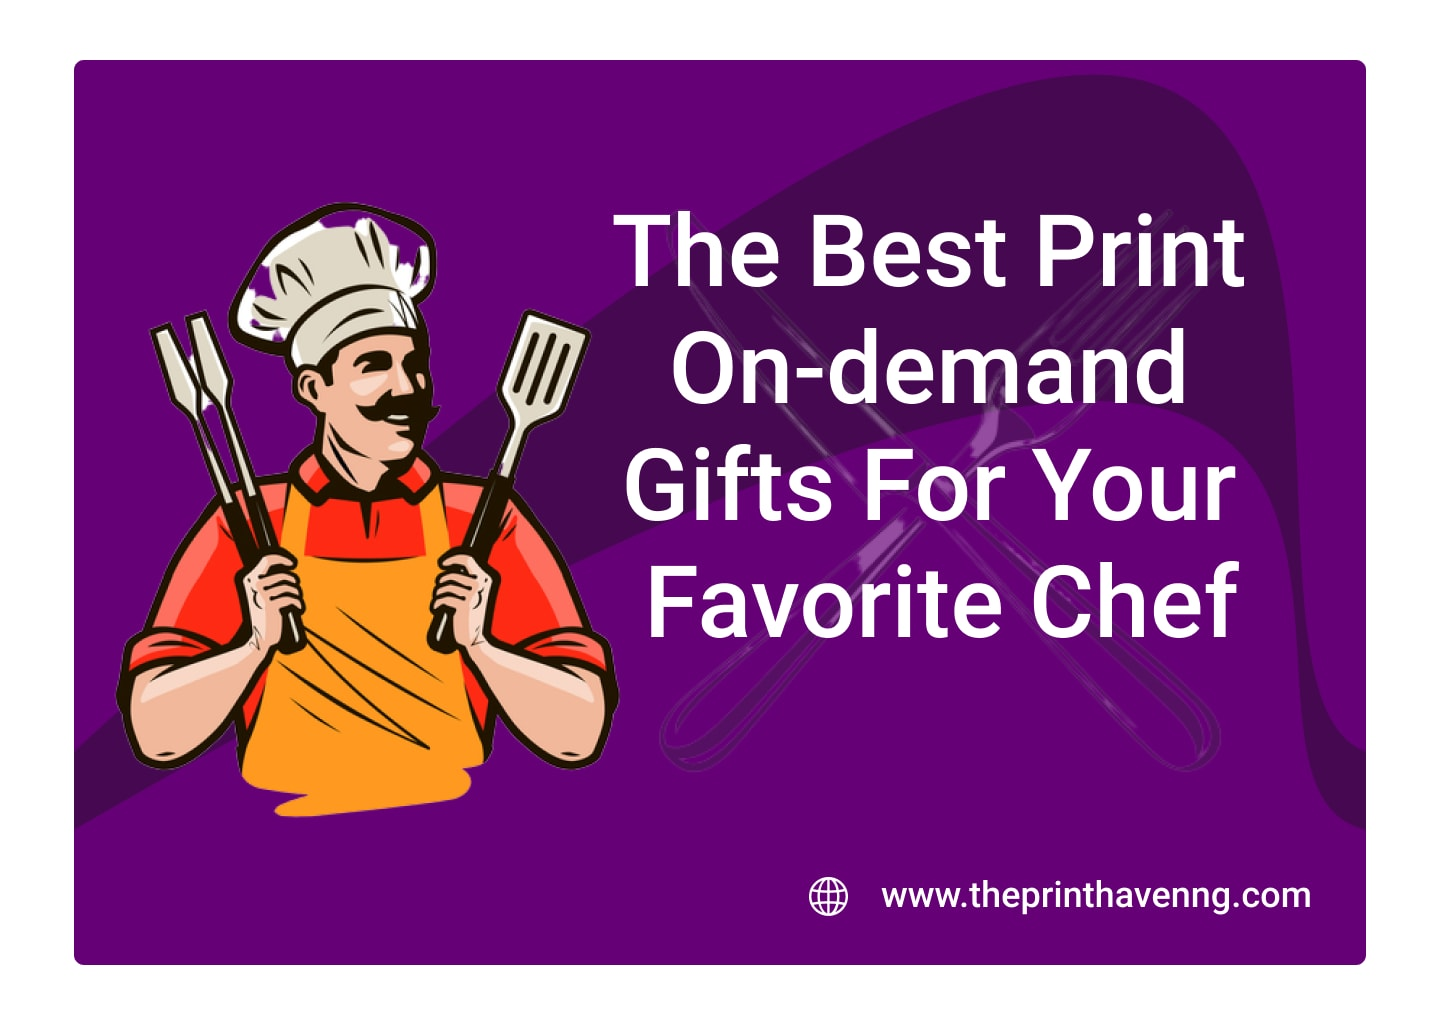 Top 7 Print On-demand Gifts For Your Favorite Chef